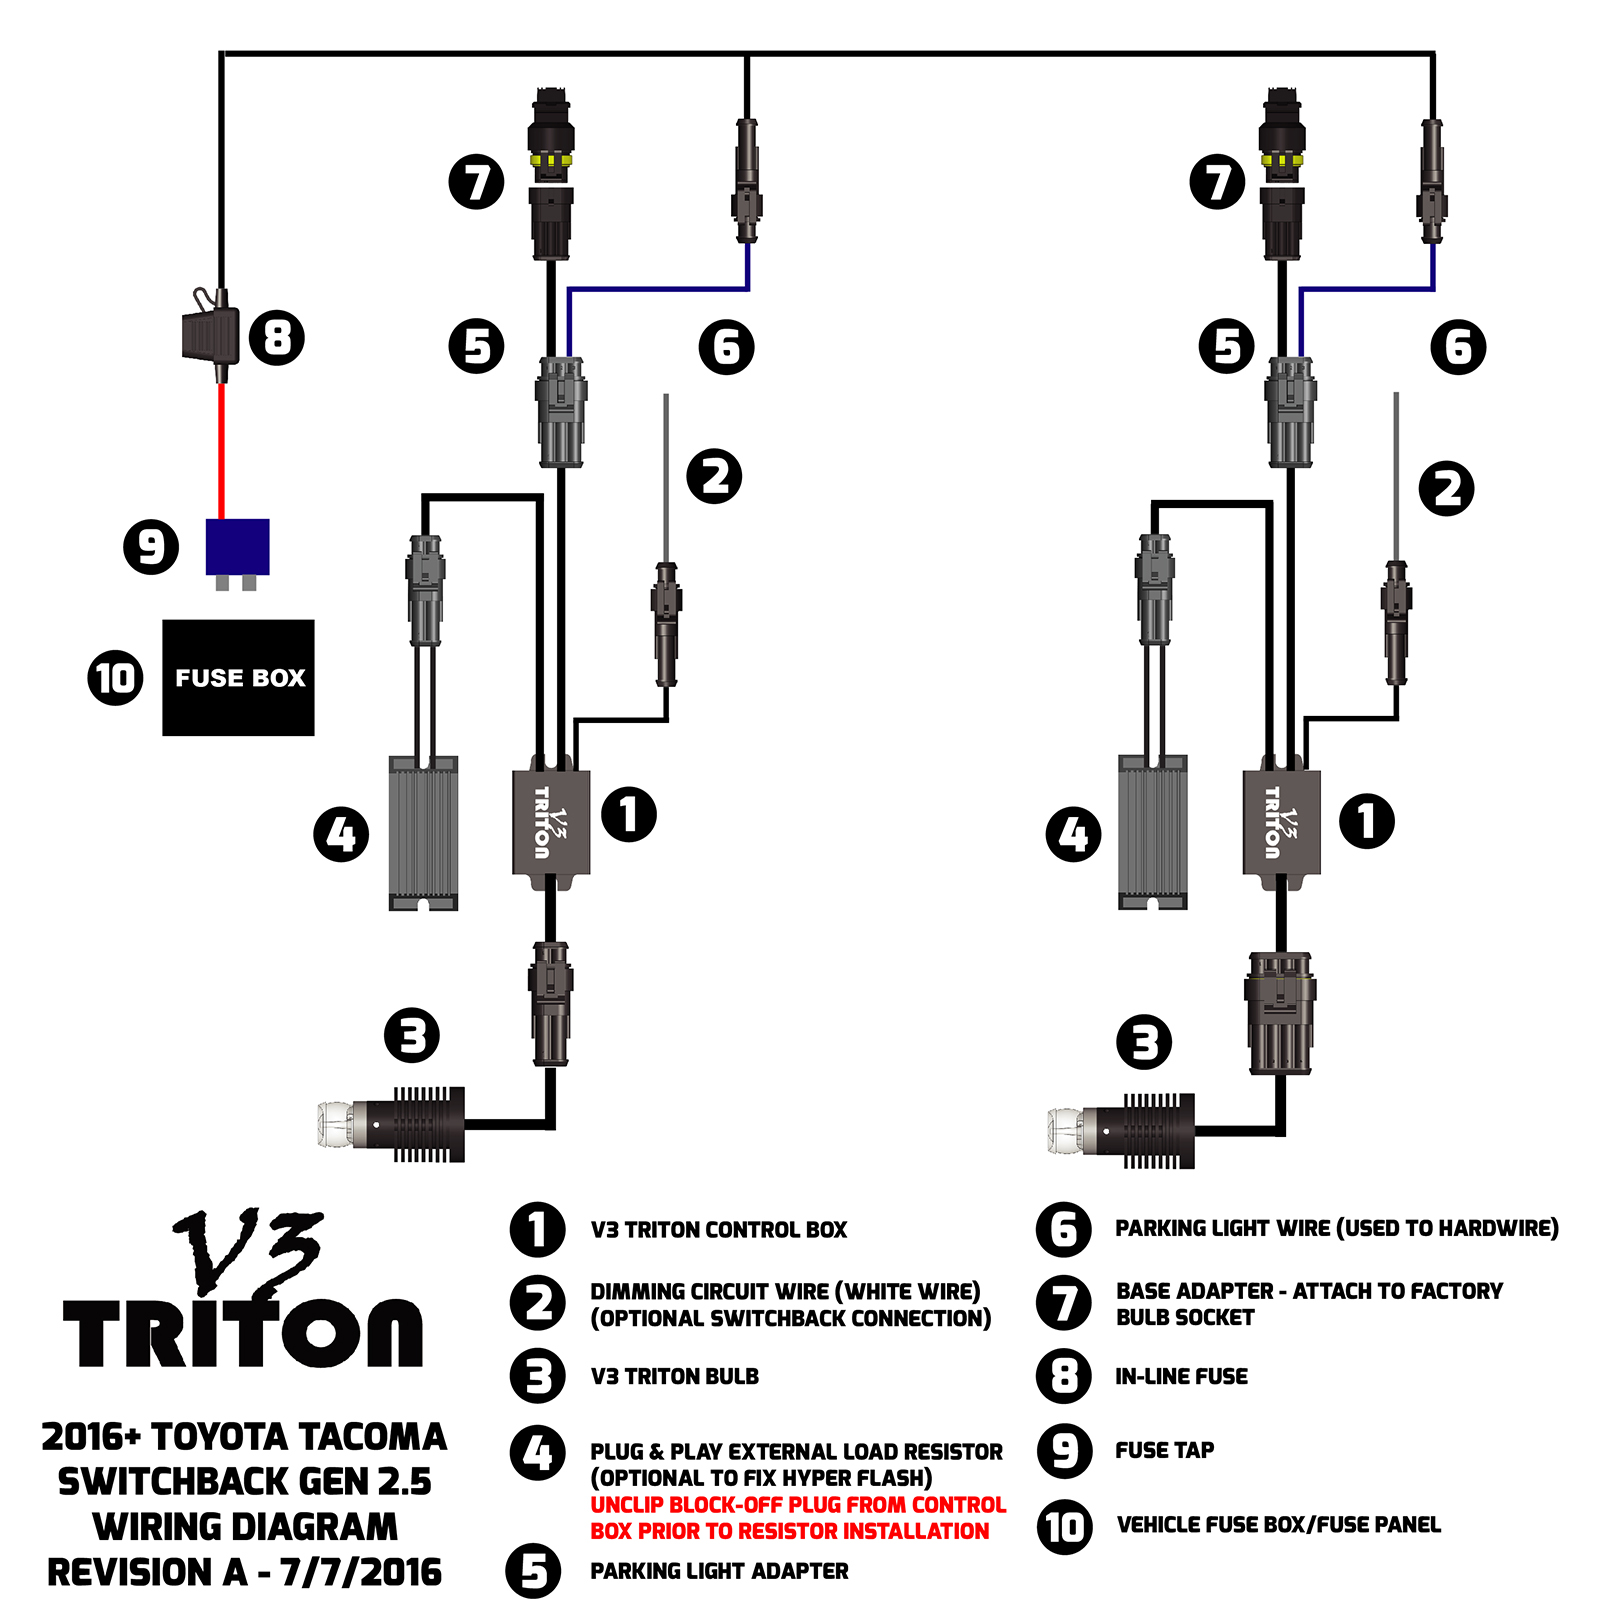 V3_Gen_2.5_A_Tacoma wiring diagrams 2016 tacoma wiring diagram at crackthecode.co